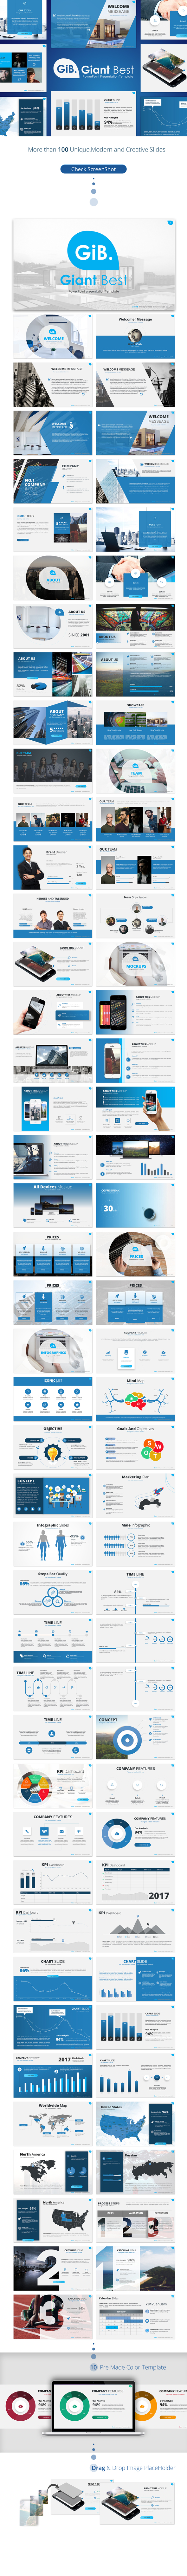 Giant Best PowerPoint Presentation Template - PowerPoint Templates Presentation Templates